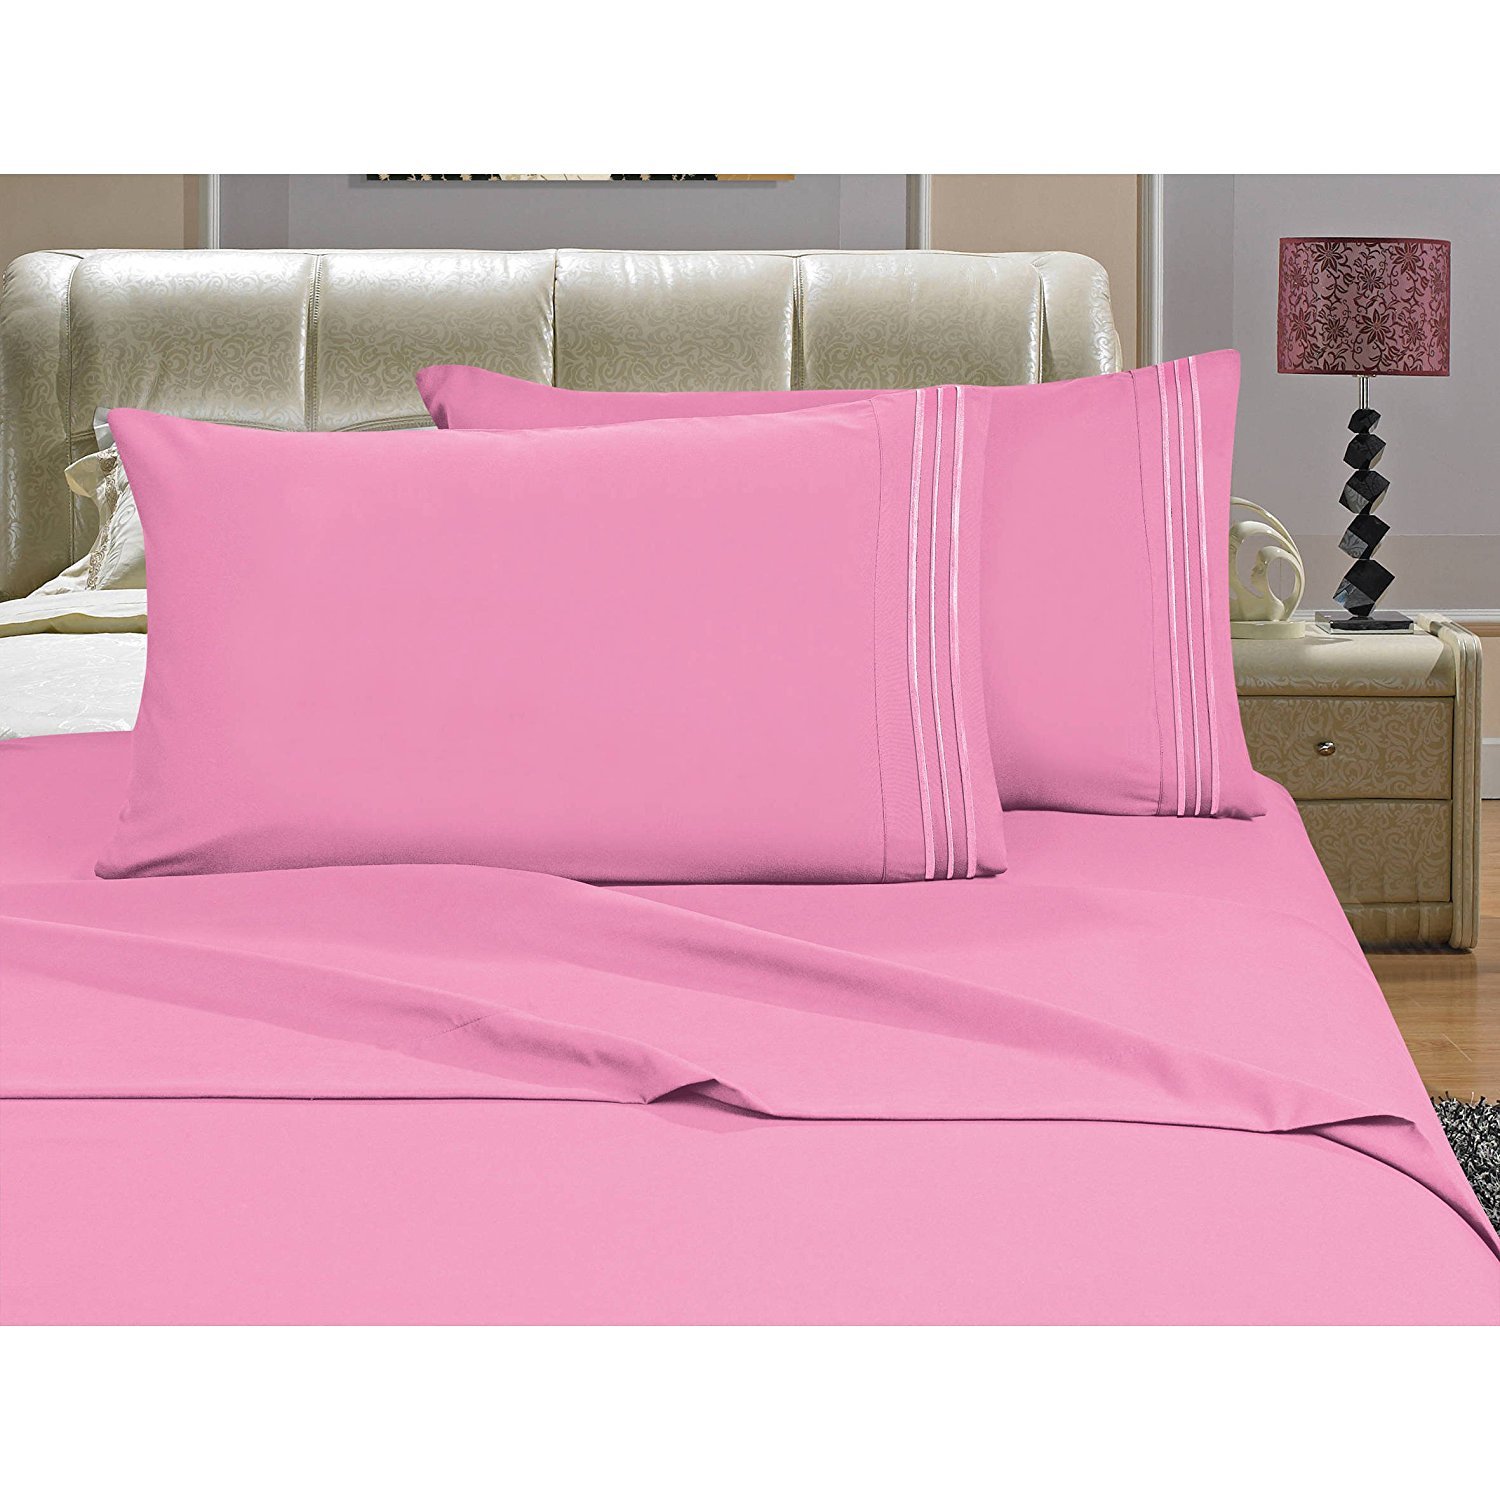 D&A 4 Piece Beautiful Light Pink King Sheet Set, Deep Pocket Bedding Embroidered Stripe Comfortable Chic Elegant Solid Classic Breathable Soft Cozy Luxurious, Microfiber, Polyester